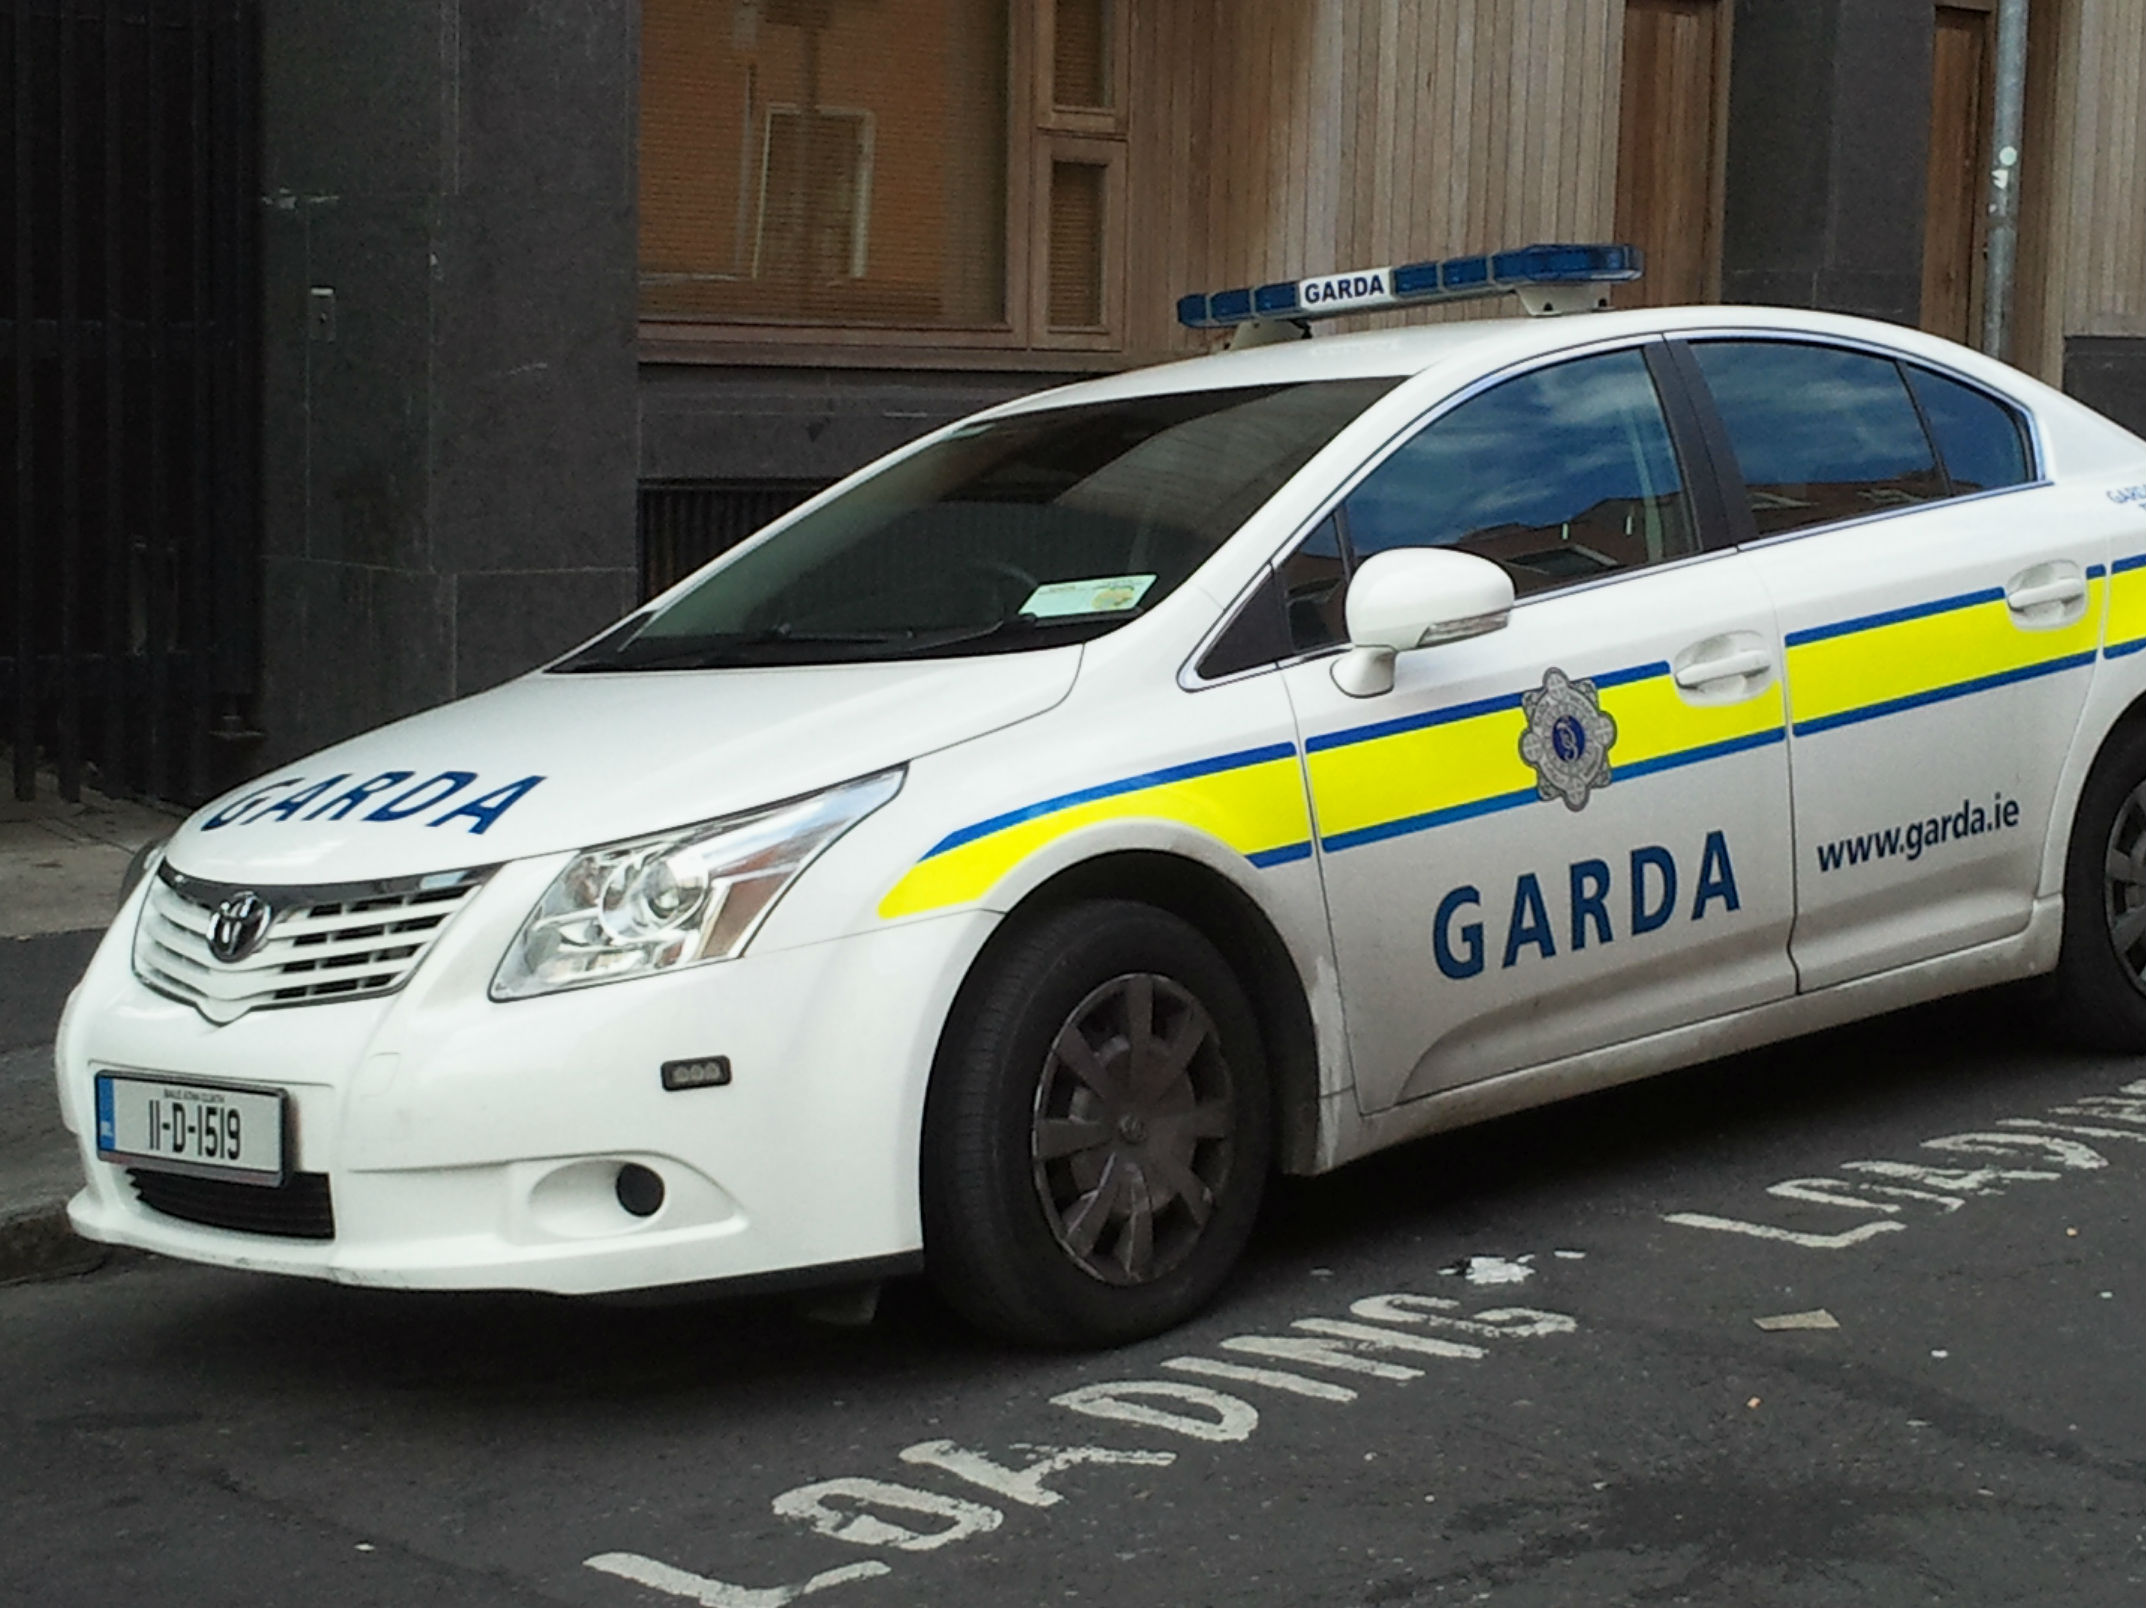 Garda Car Rammed After Armed Raid